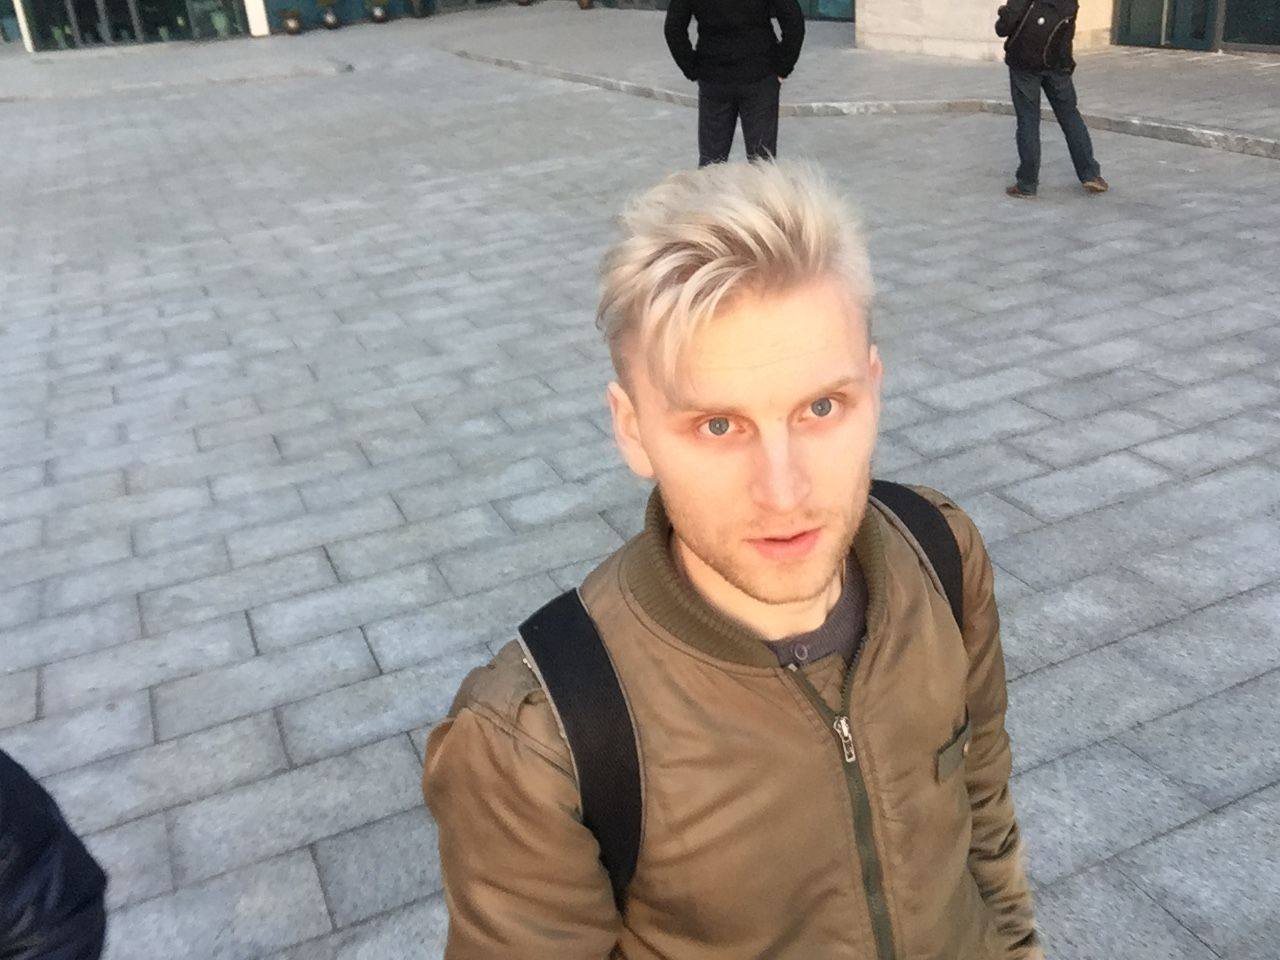 Male White Sandy Hair Style Color Sandy Hair Hair Color Haircuts For Men